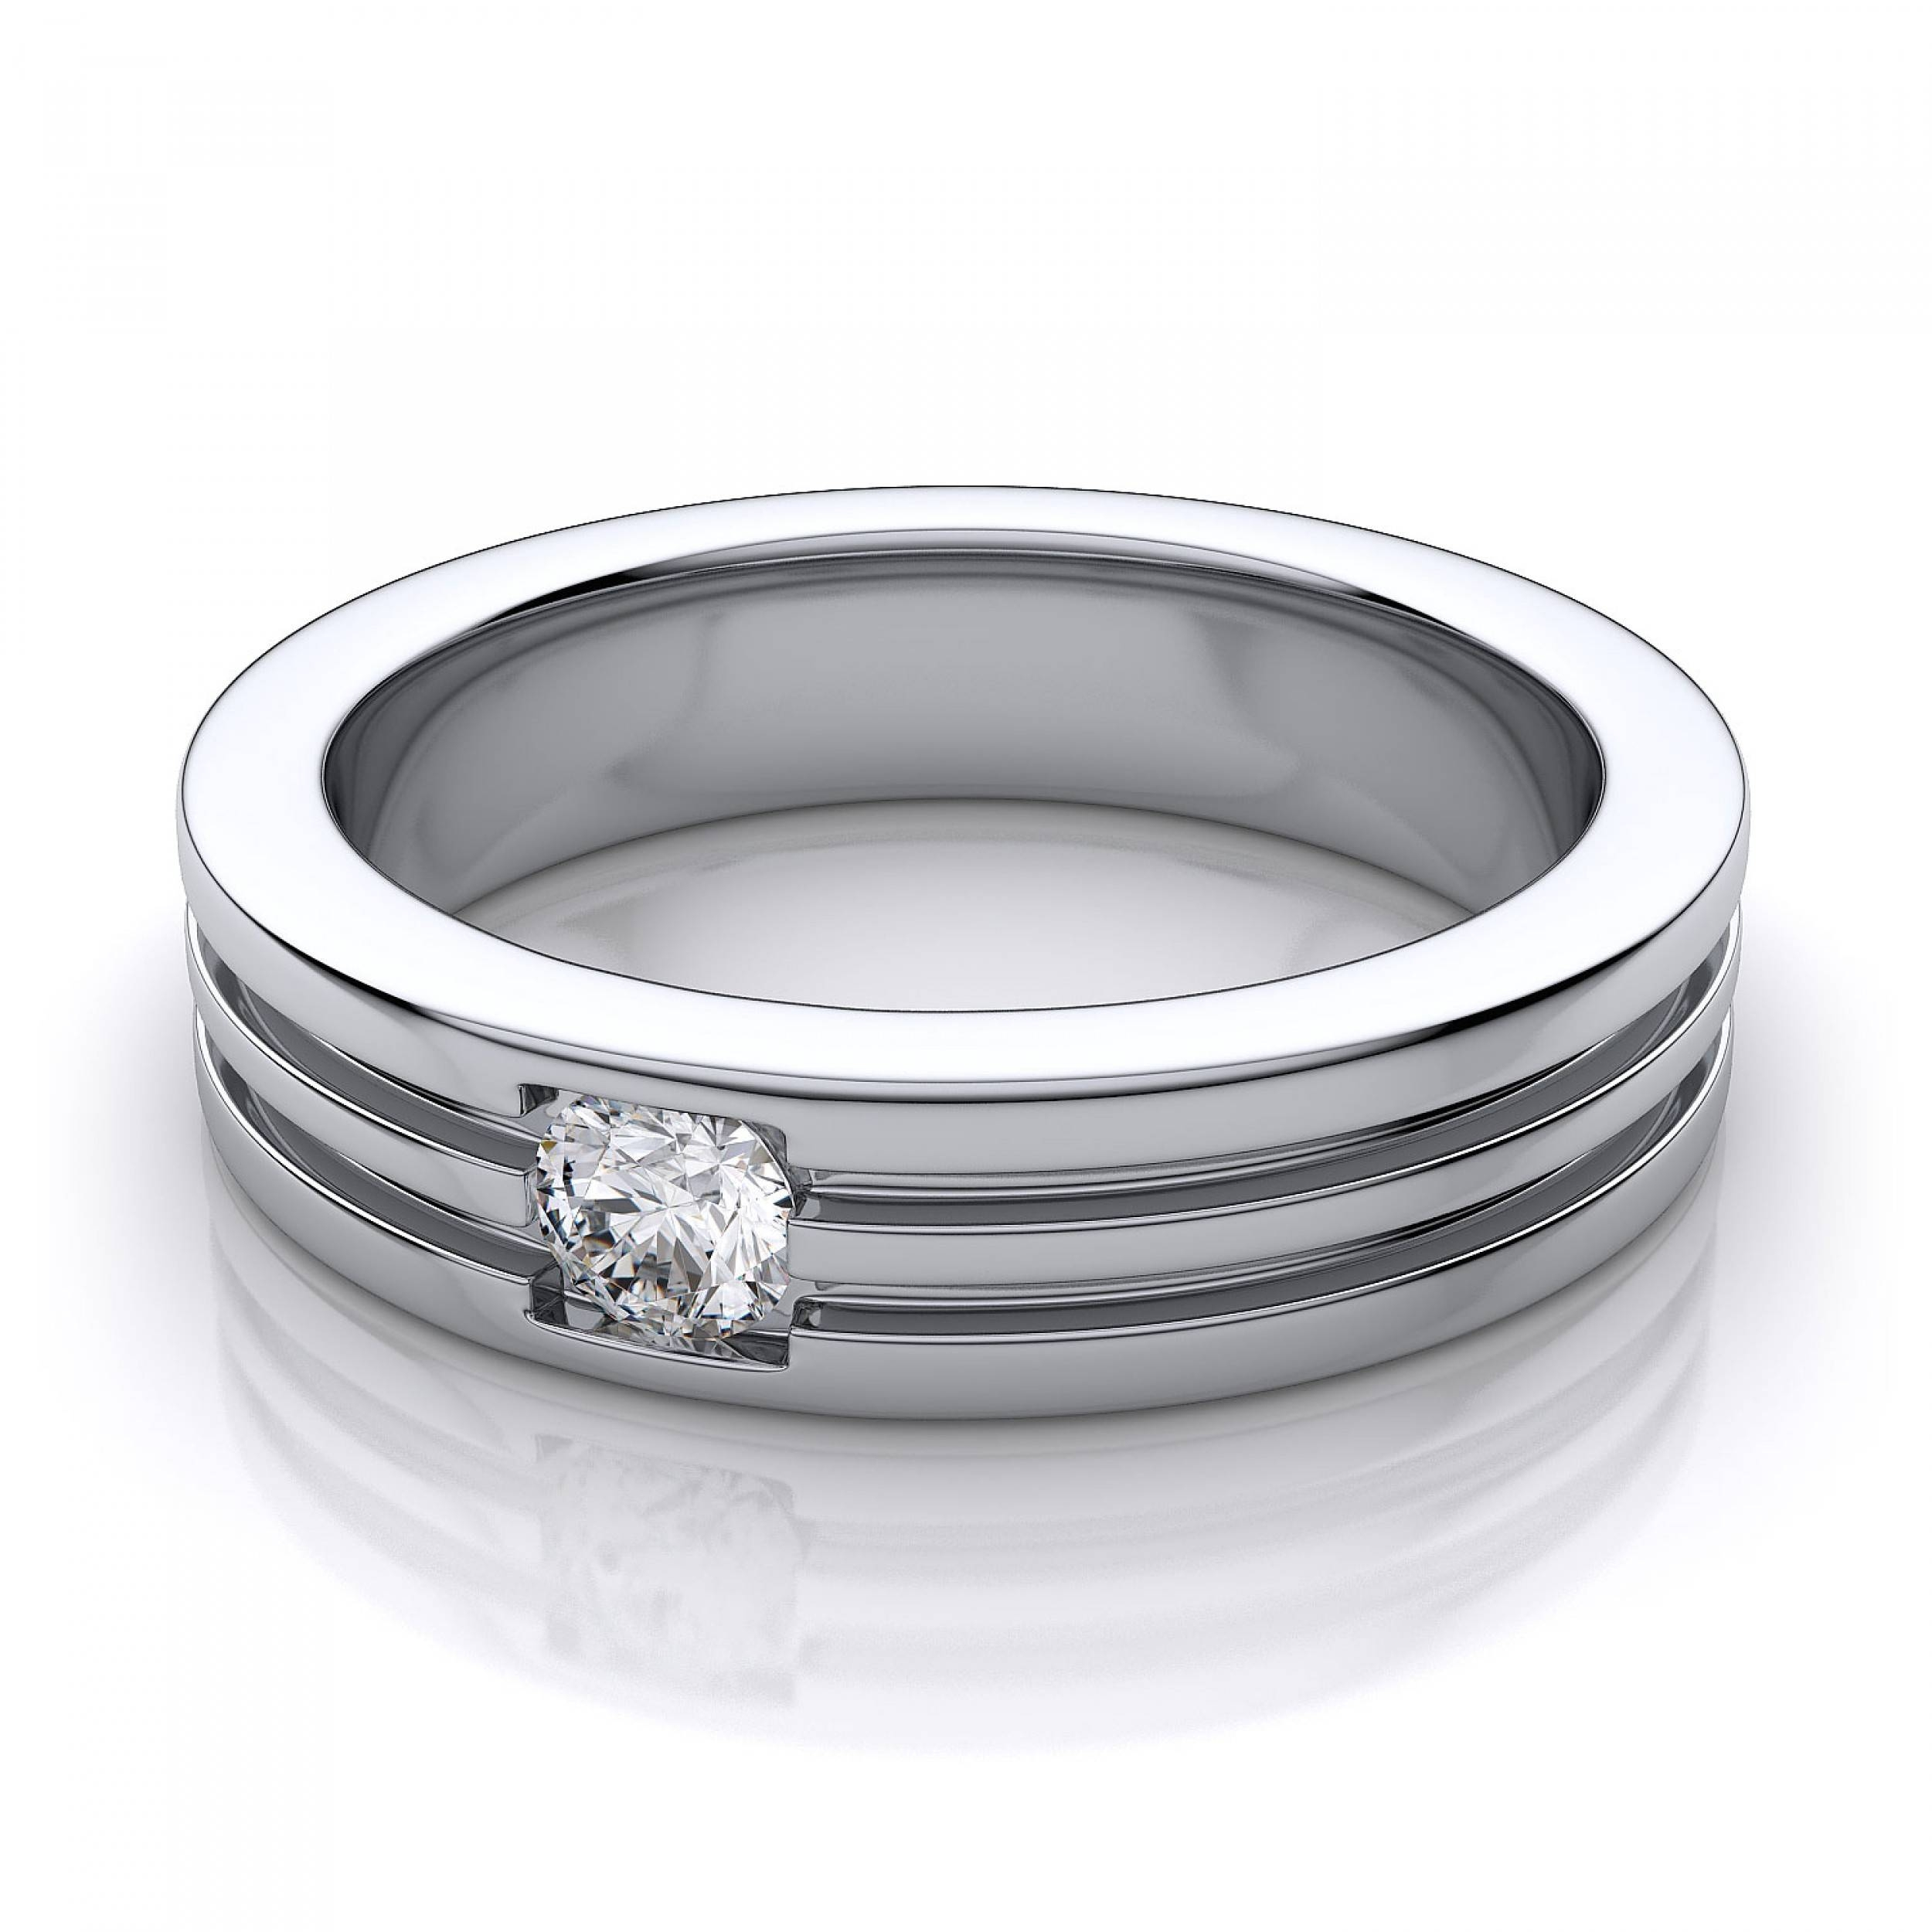 5.2Mm Men's Round Diamond Wedding Ring In 14K White Gold Within White Gold Male Wedding Rings (Gallery 10 of 15)